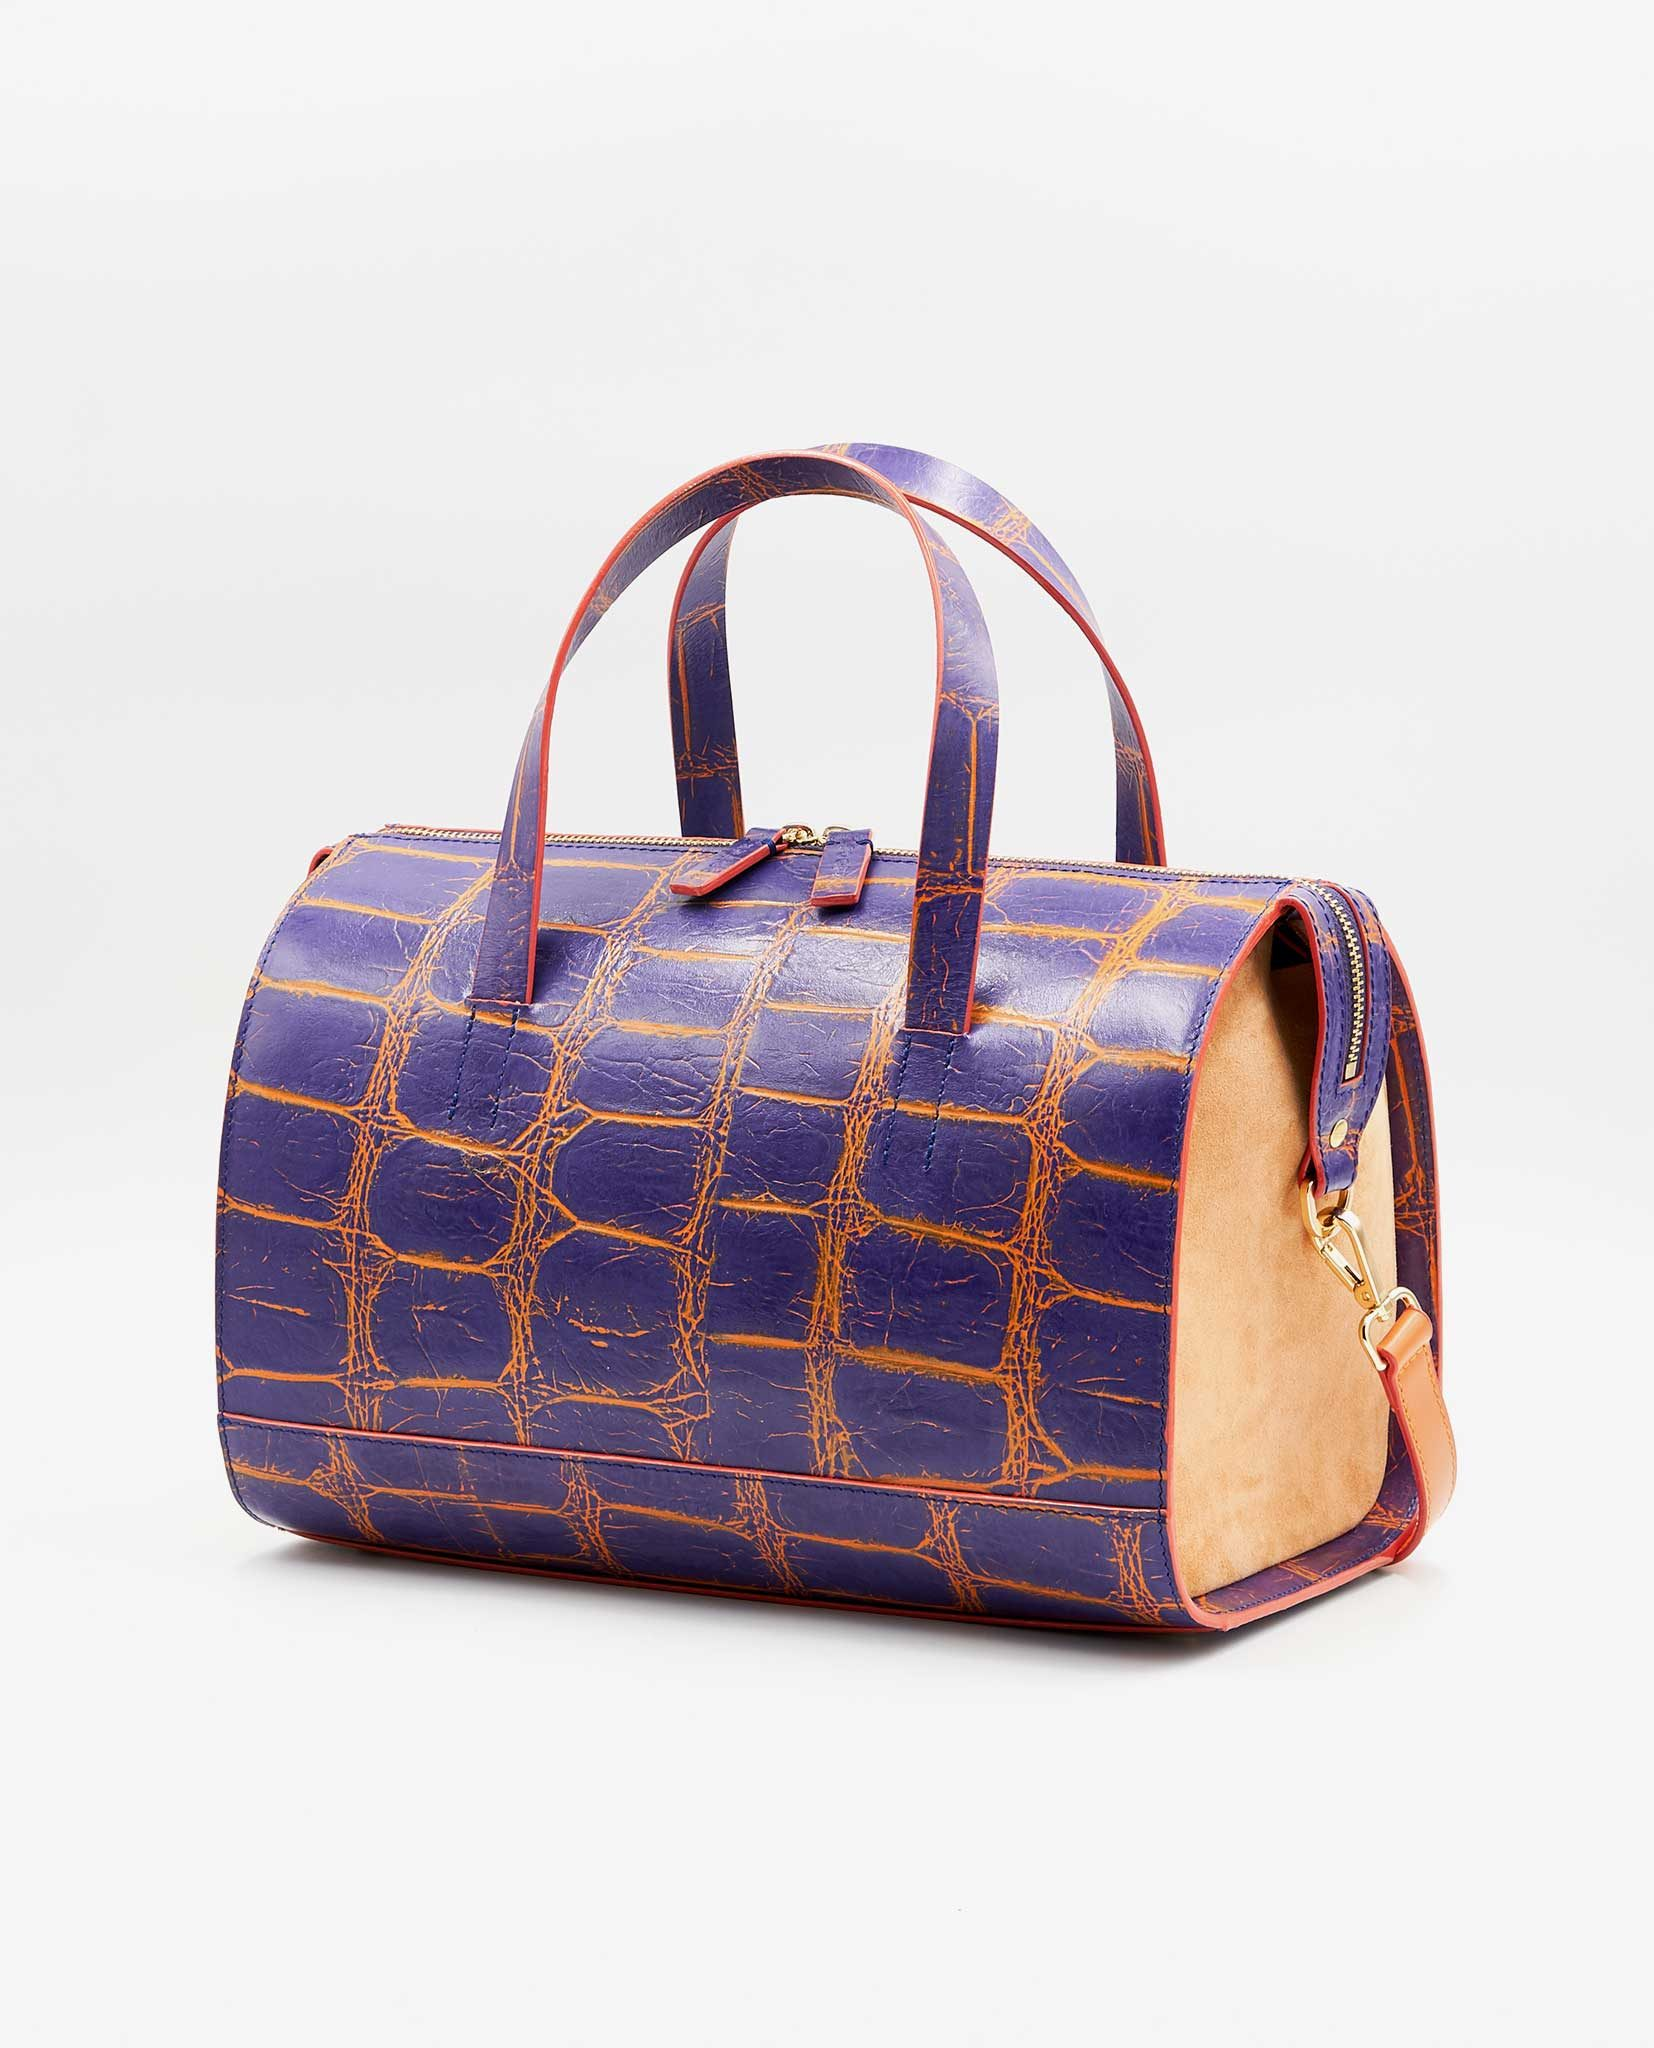 SOOFRE-Berlin-unique-Bowler-Bag-croco-purple-orange-apricot-SIDES